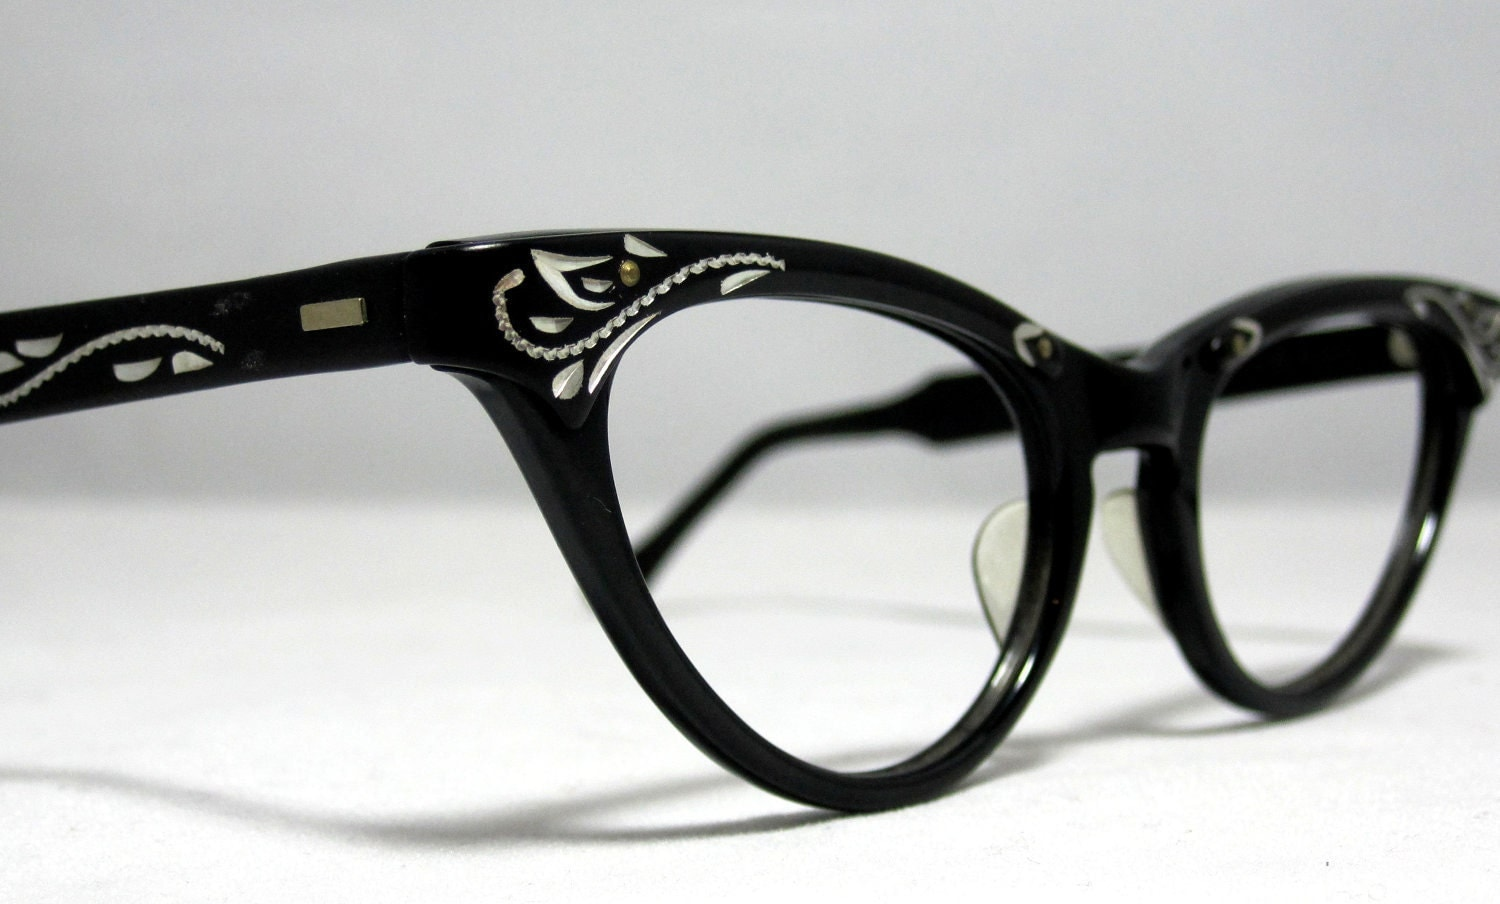 Cat Eye Frame Eye Glasses : Vintage Cat Eye Glasses Frames. Black and Silver with Etched